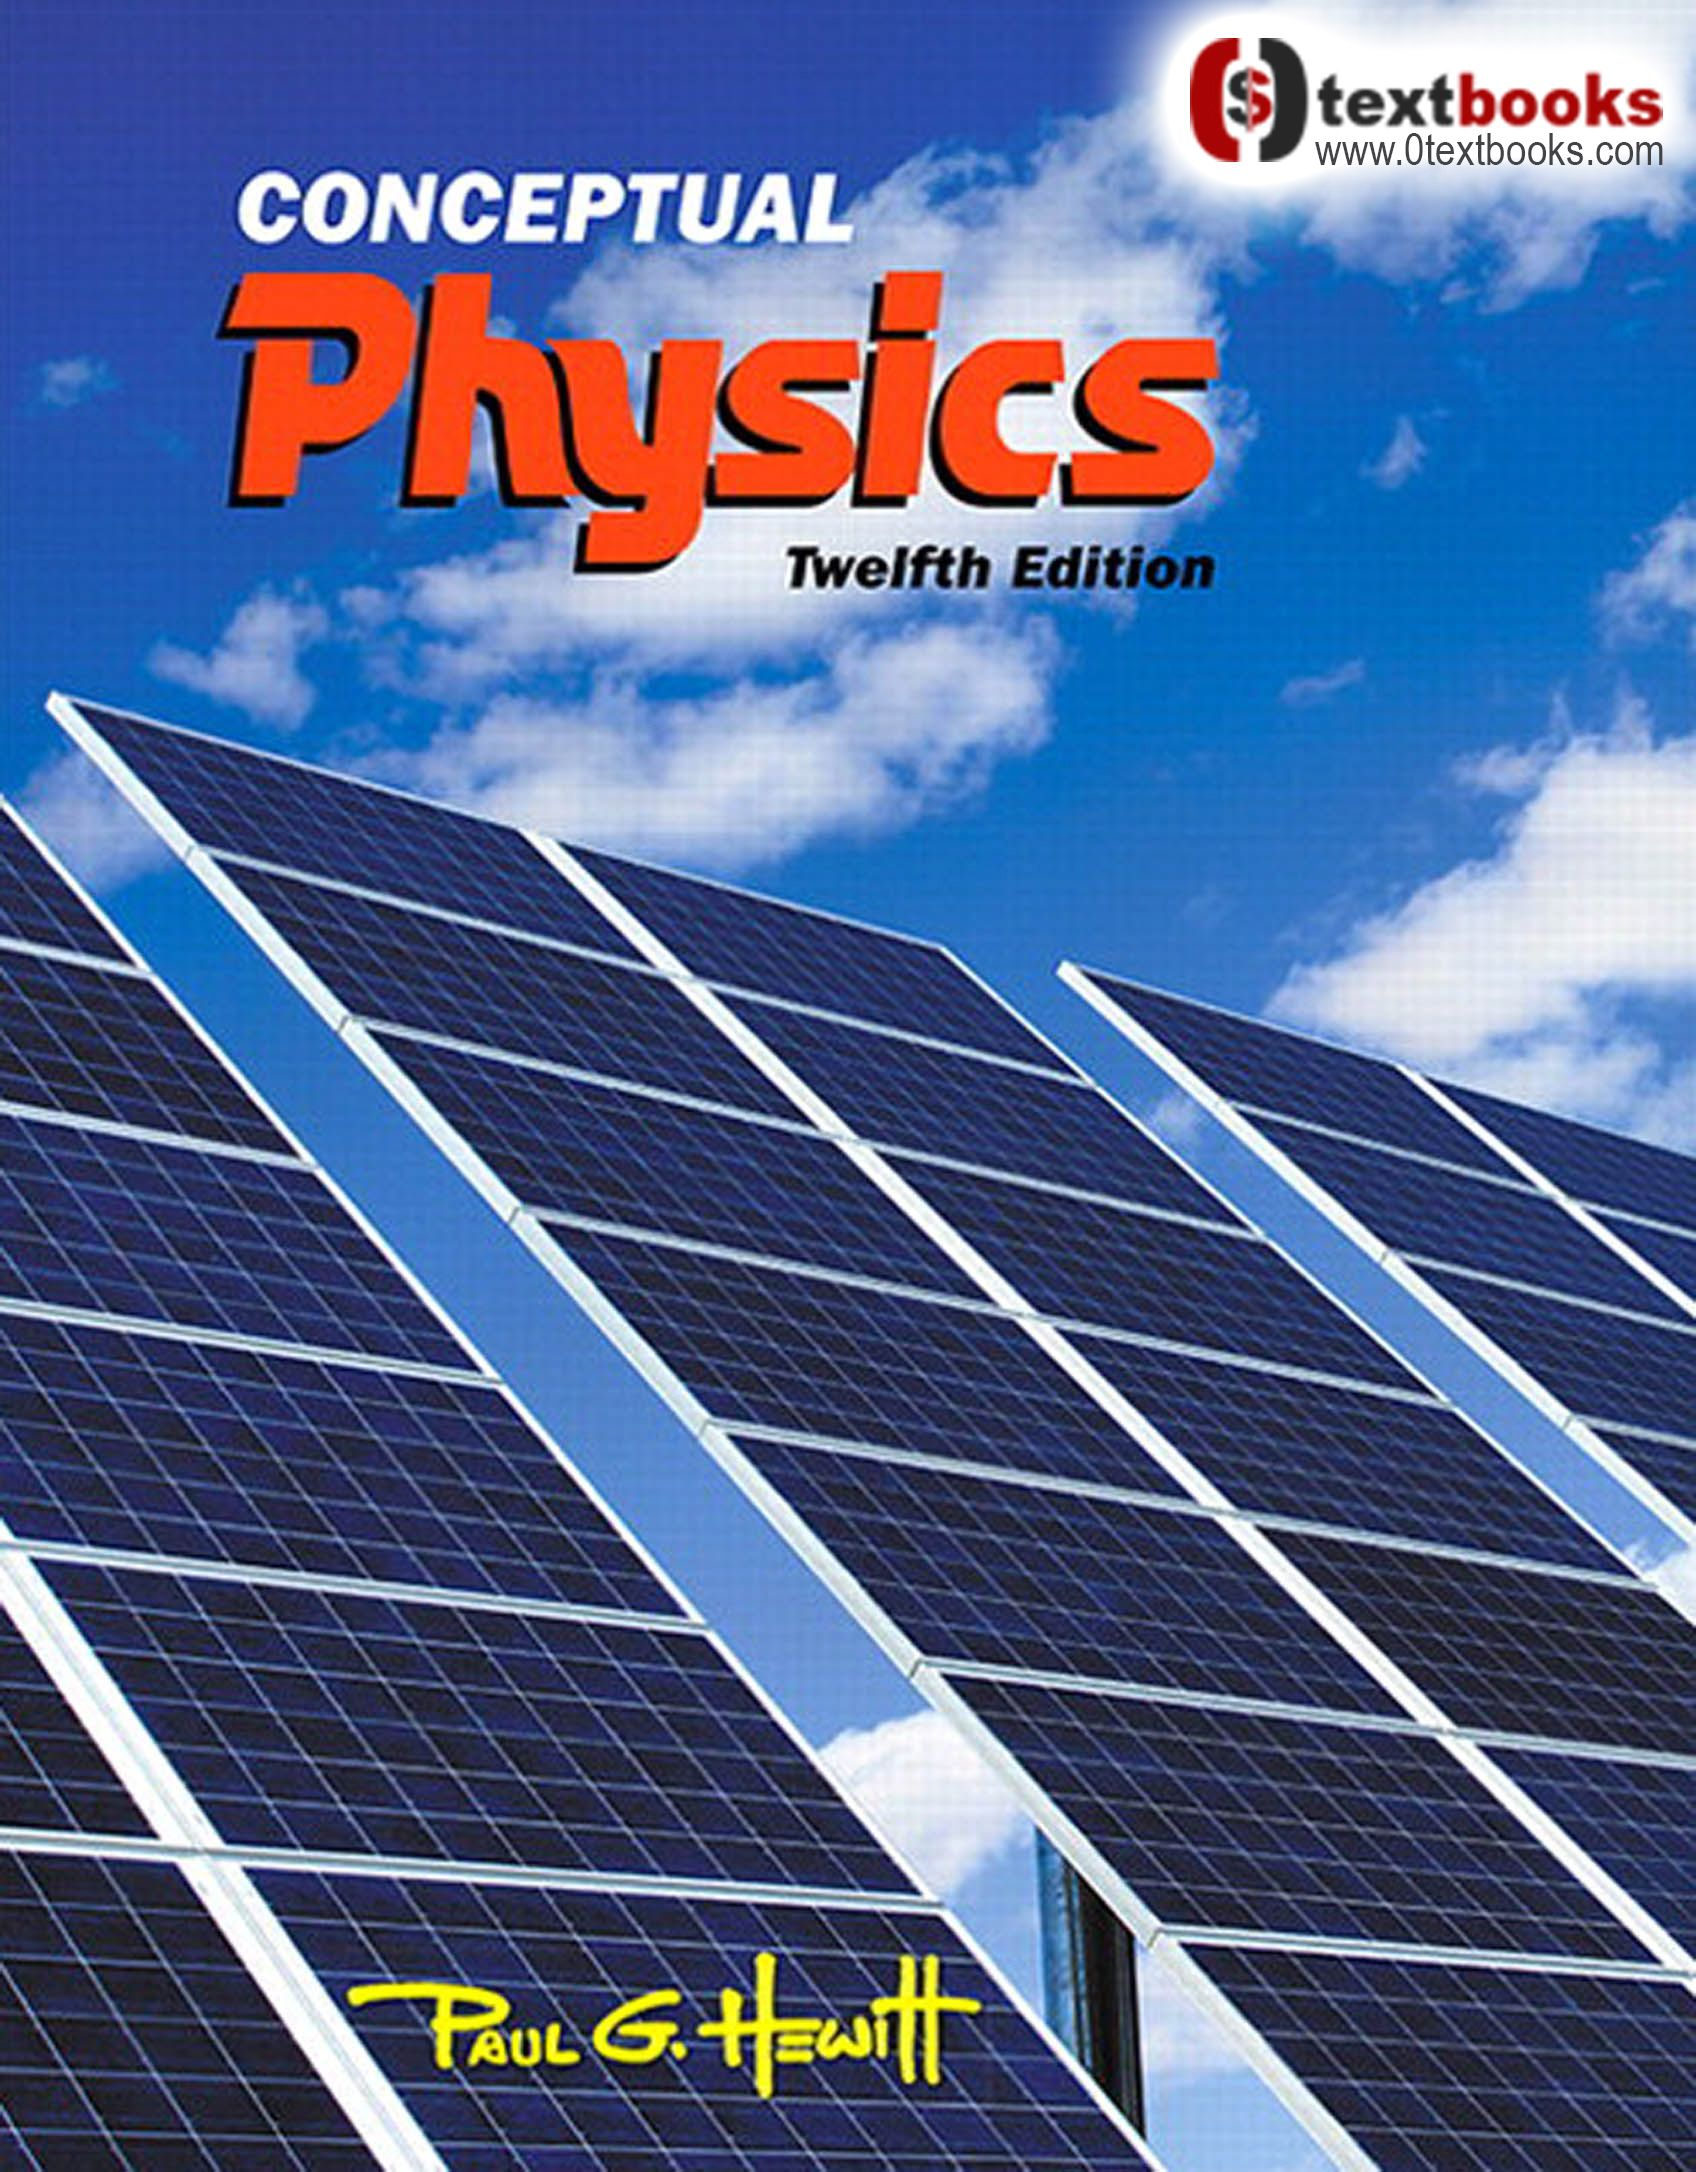 Physic Textbook Pdf